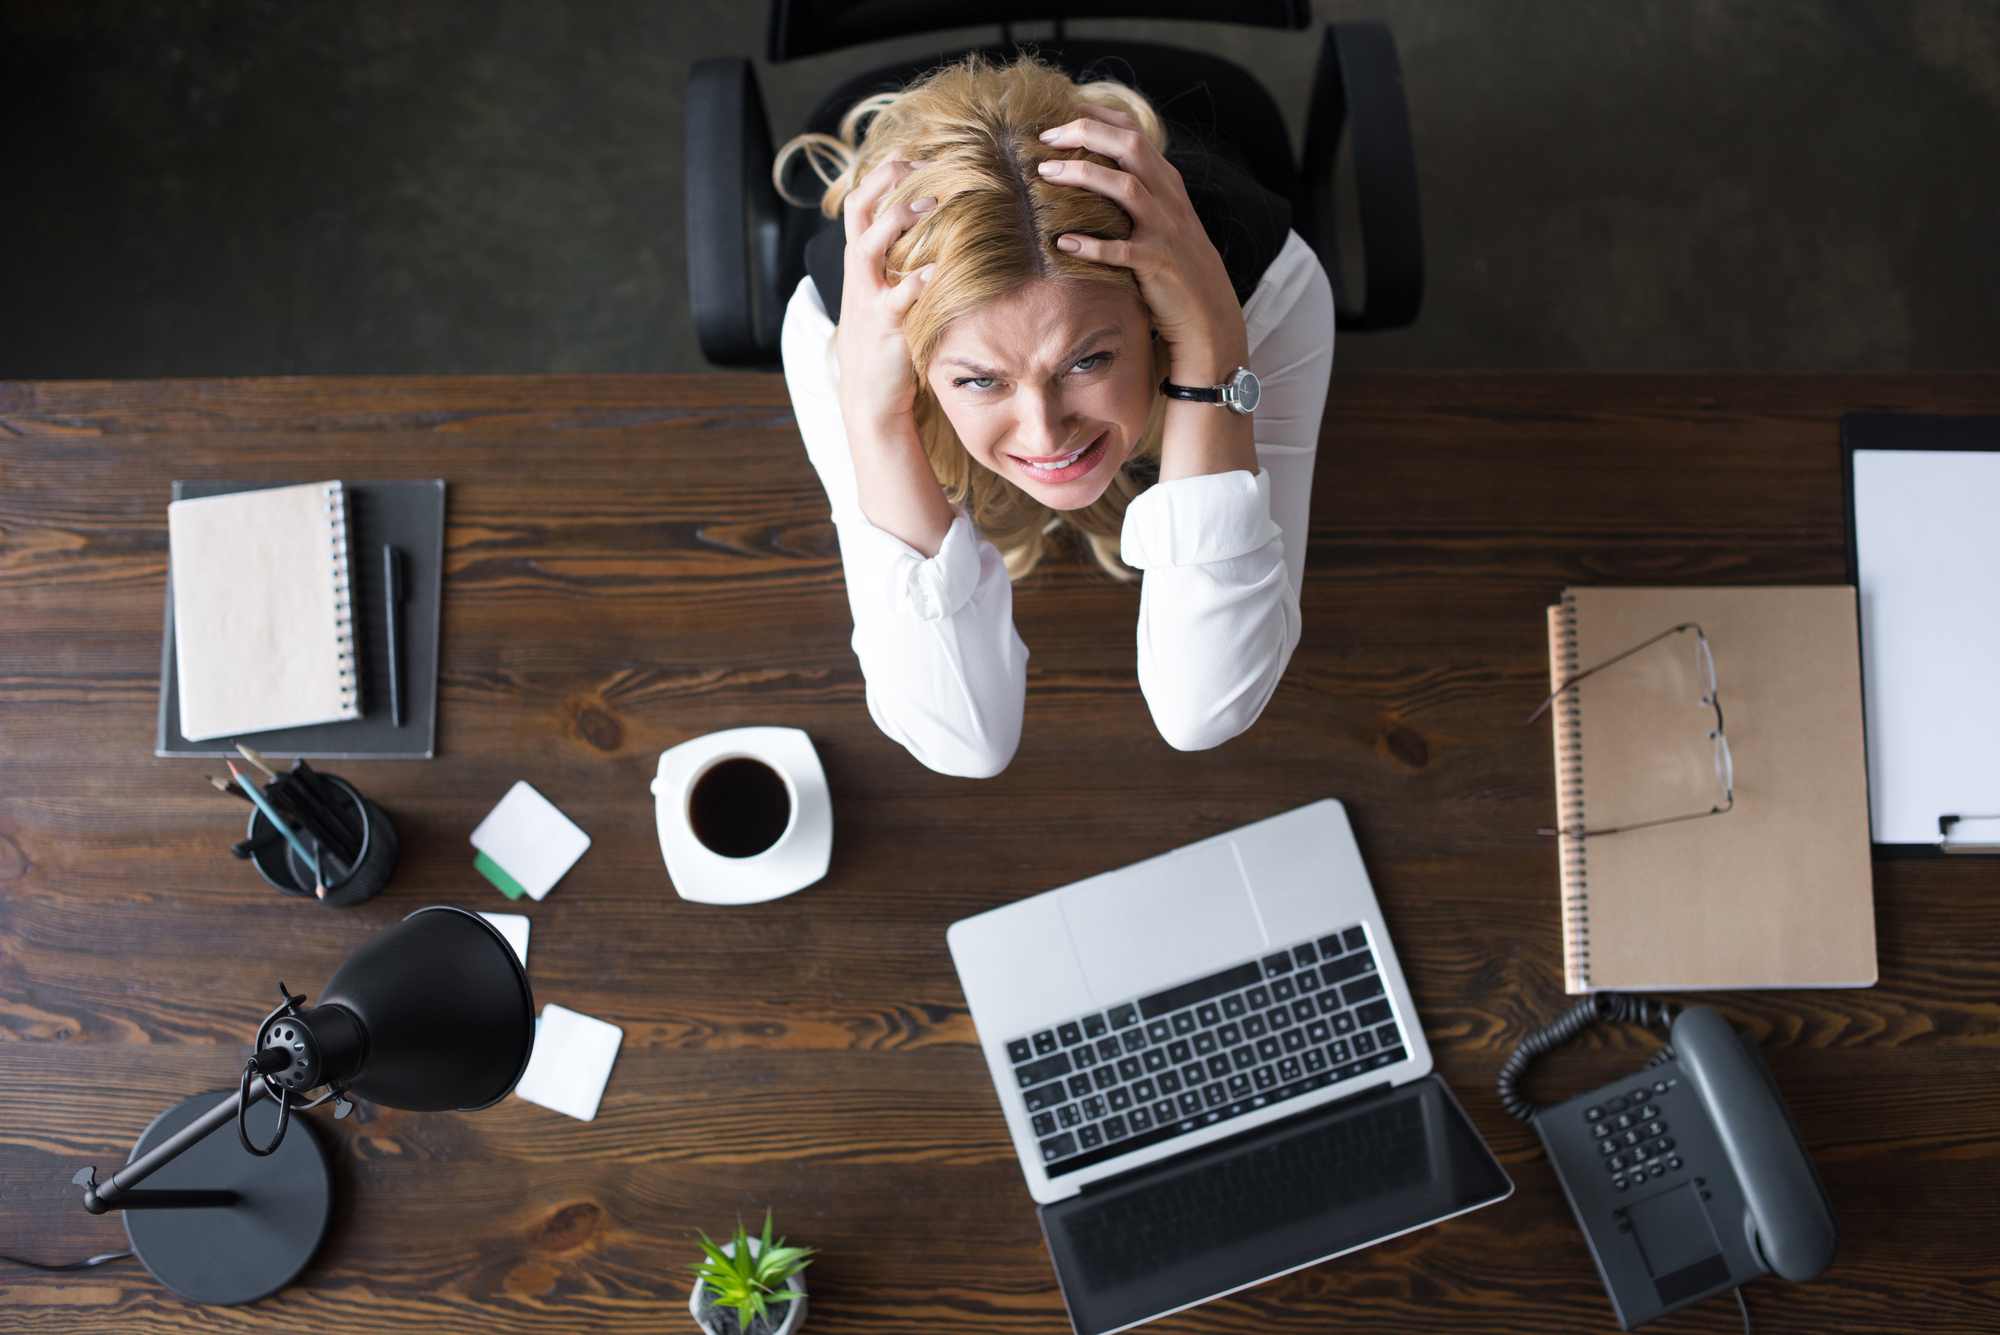 Overhead view of stressed businesswoman touching head with hands and looking at camera in office